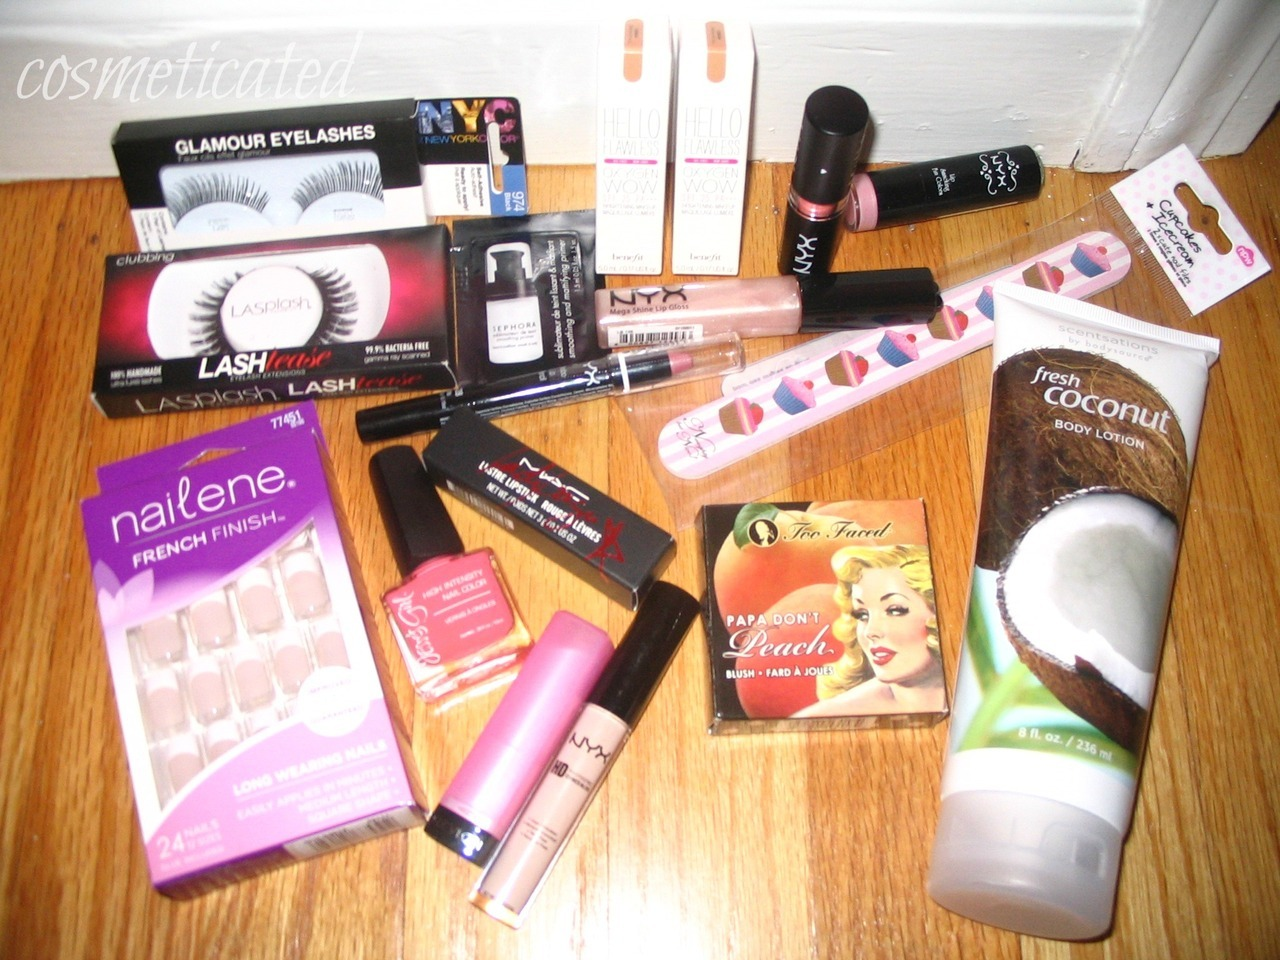 cosmeticated:  COSMETICATED BEAUTY GIVEAWAY I just recently hit 19K so I want to do a giveaway. RULES: MUST BE FOLLOWING ME. I WILL CHECK!!!! - http://cosmeticated.tumblr.com/ MUST BE FOLLOWING ME ON INSTAGRAM (VALERRRRRIE) if you have one Reblog as MANY times as you'd like. LIKES DONT COUNT I WILL PICK THE WINNER JULY 14th USING A RANDOM GENERATOR. WILL SHIP ANYWHERE *If people aren't following rules…I'll have no problem canceling the giveway PRIZES- 2 Boxes of false lashes - NYC & LA SPLASH 1 box of fake press on nails Jesse Girl nail polish in JULIEG 2 sample boxes of Benefit Hello Flawless Brightening Makeup in shade Honey Sample of Sephora primer Revlon Lip Butter in Cupcake NYX Matte Lipstick in Hippy Chic NYX Lipstick in Baby Pink NYX Lipgloss in Baby Rose NYX HD concealer in Light NYX Jumbo Lip Pencil in Iris Lady Gaga Mac Lipstick Too Faced Papa Dont Peach blush Coconut body lotion Cupcake nail file